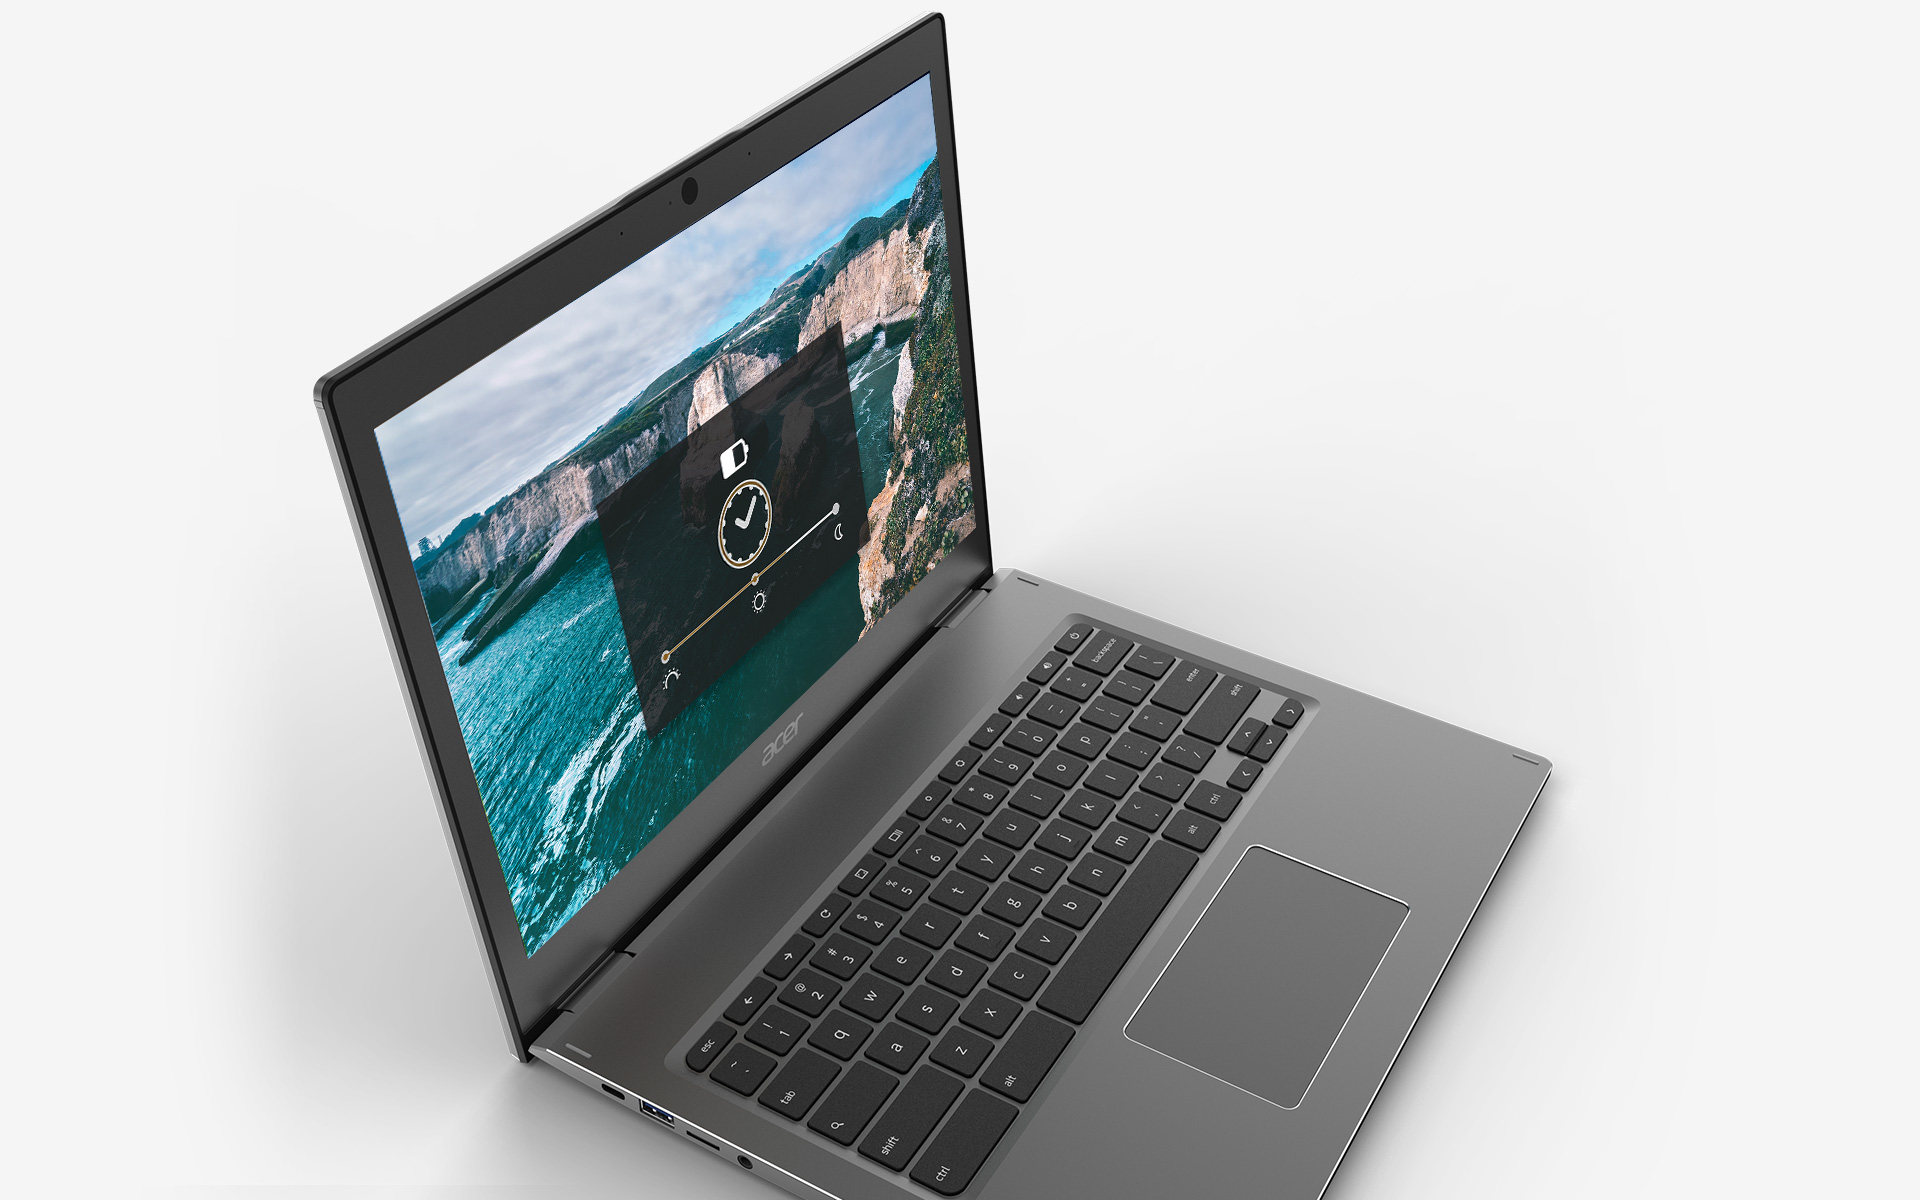 Acer Chromebook 13 - CB713 - All-day Battery Life - Large